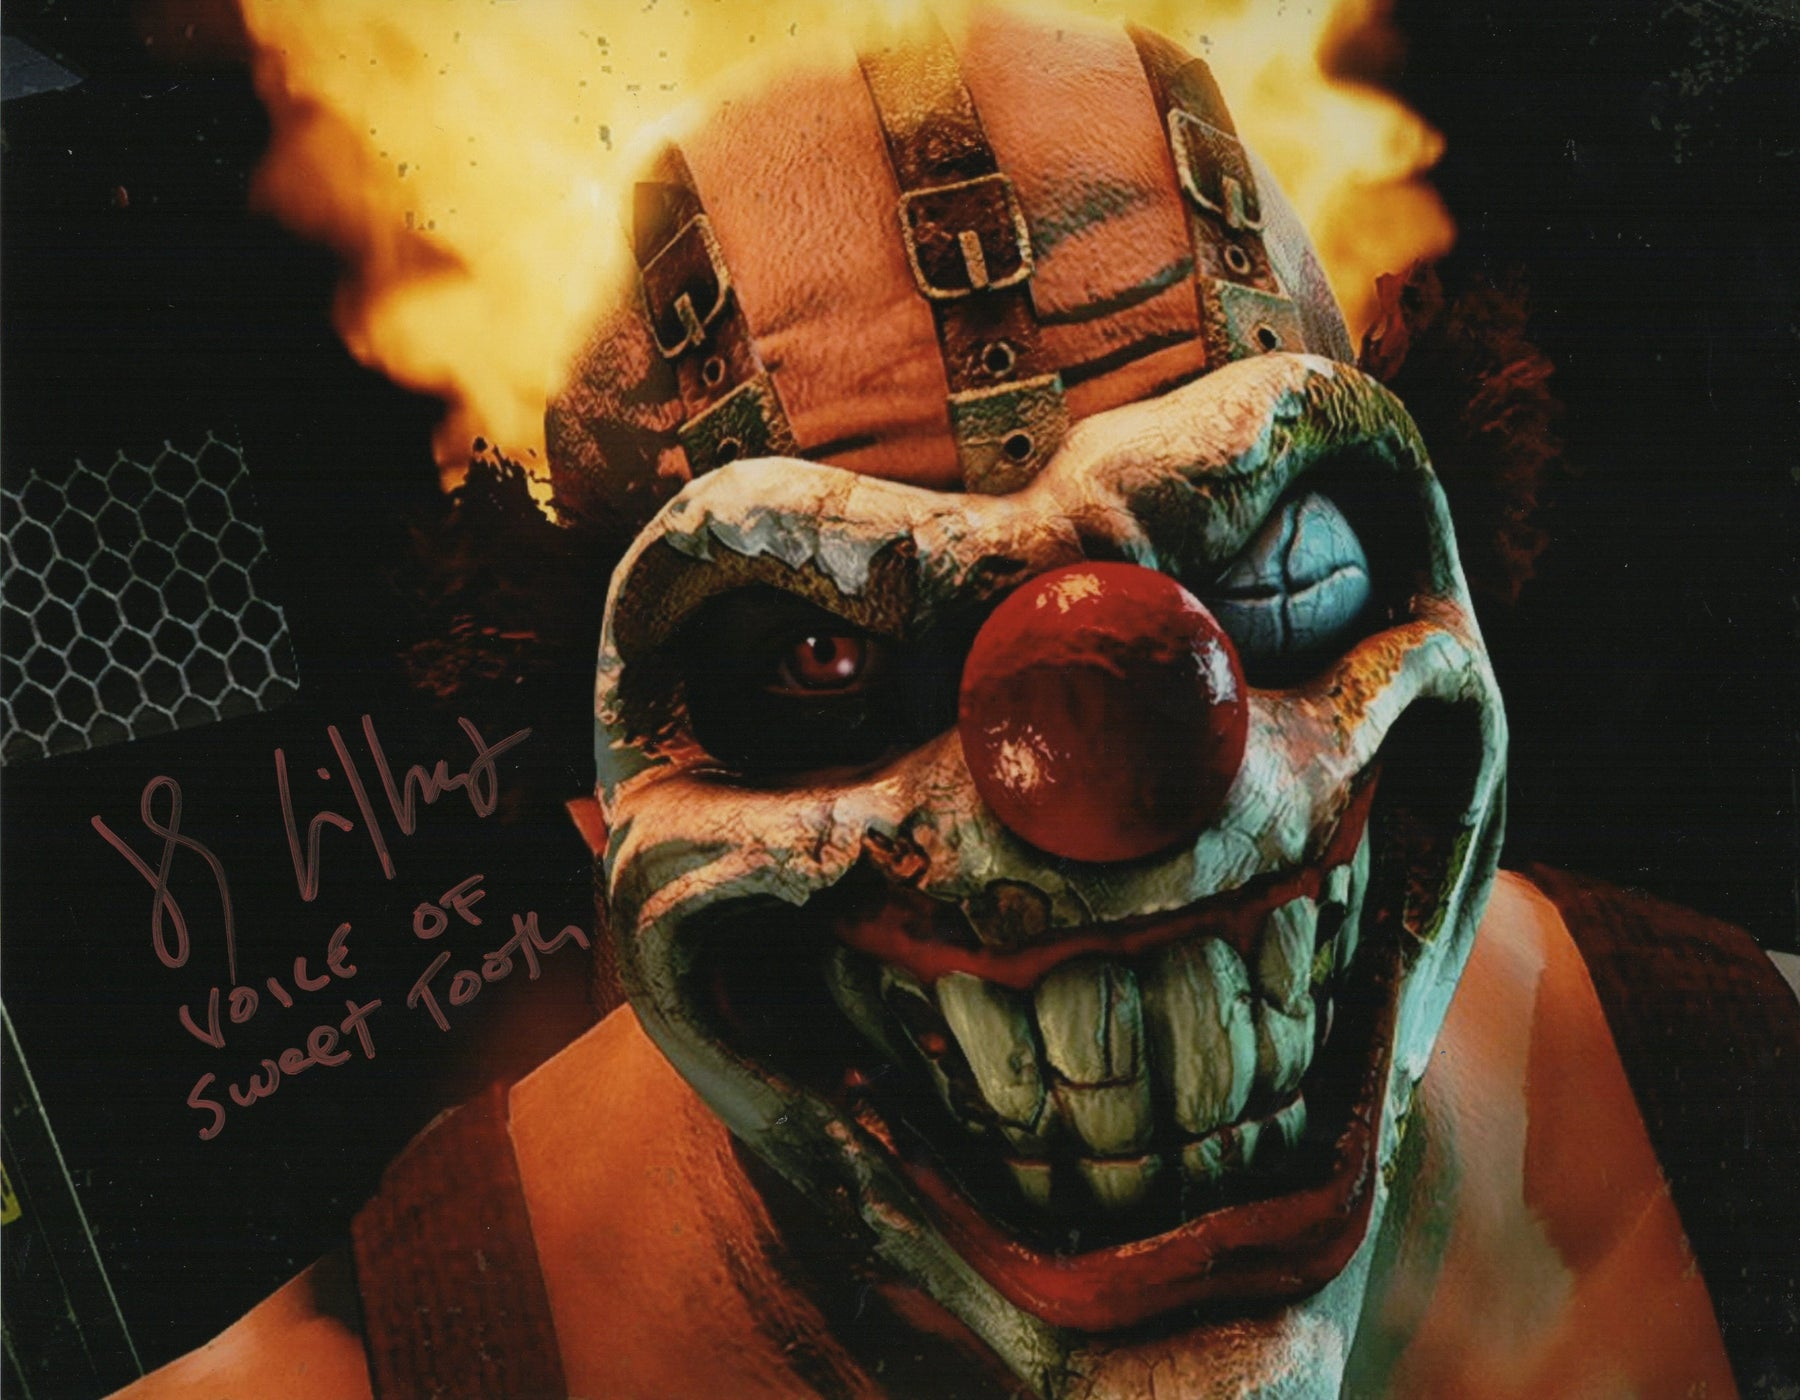 JS Gilbert Autograph 11x14 Photo Twisted Metal Sweet Tooth Picture COA Z3